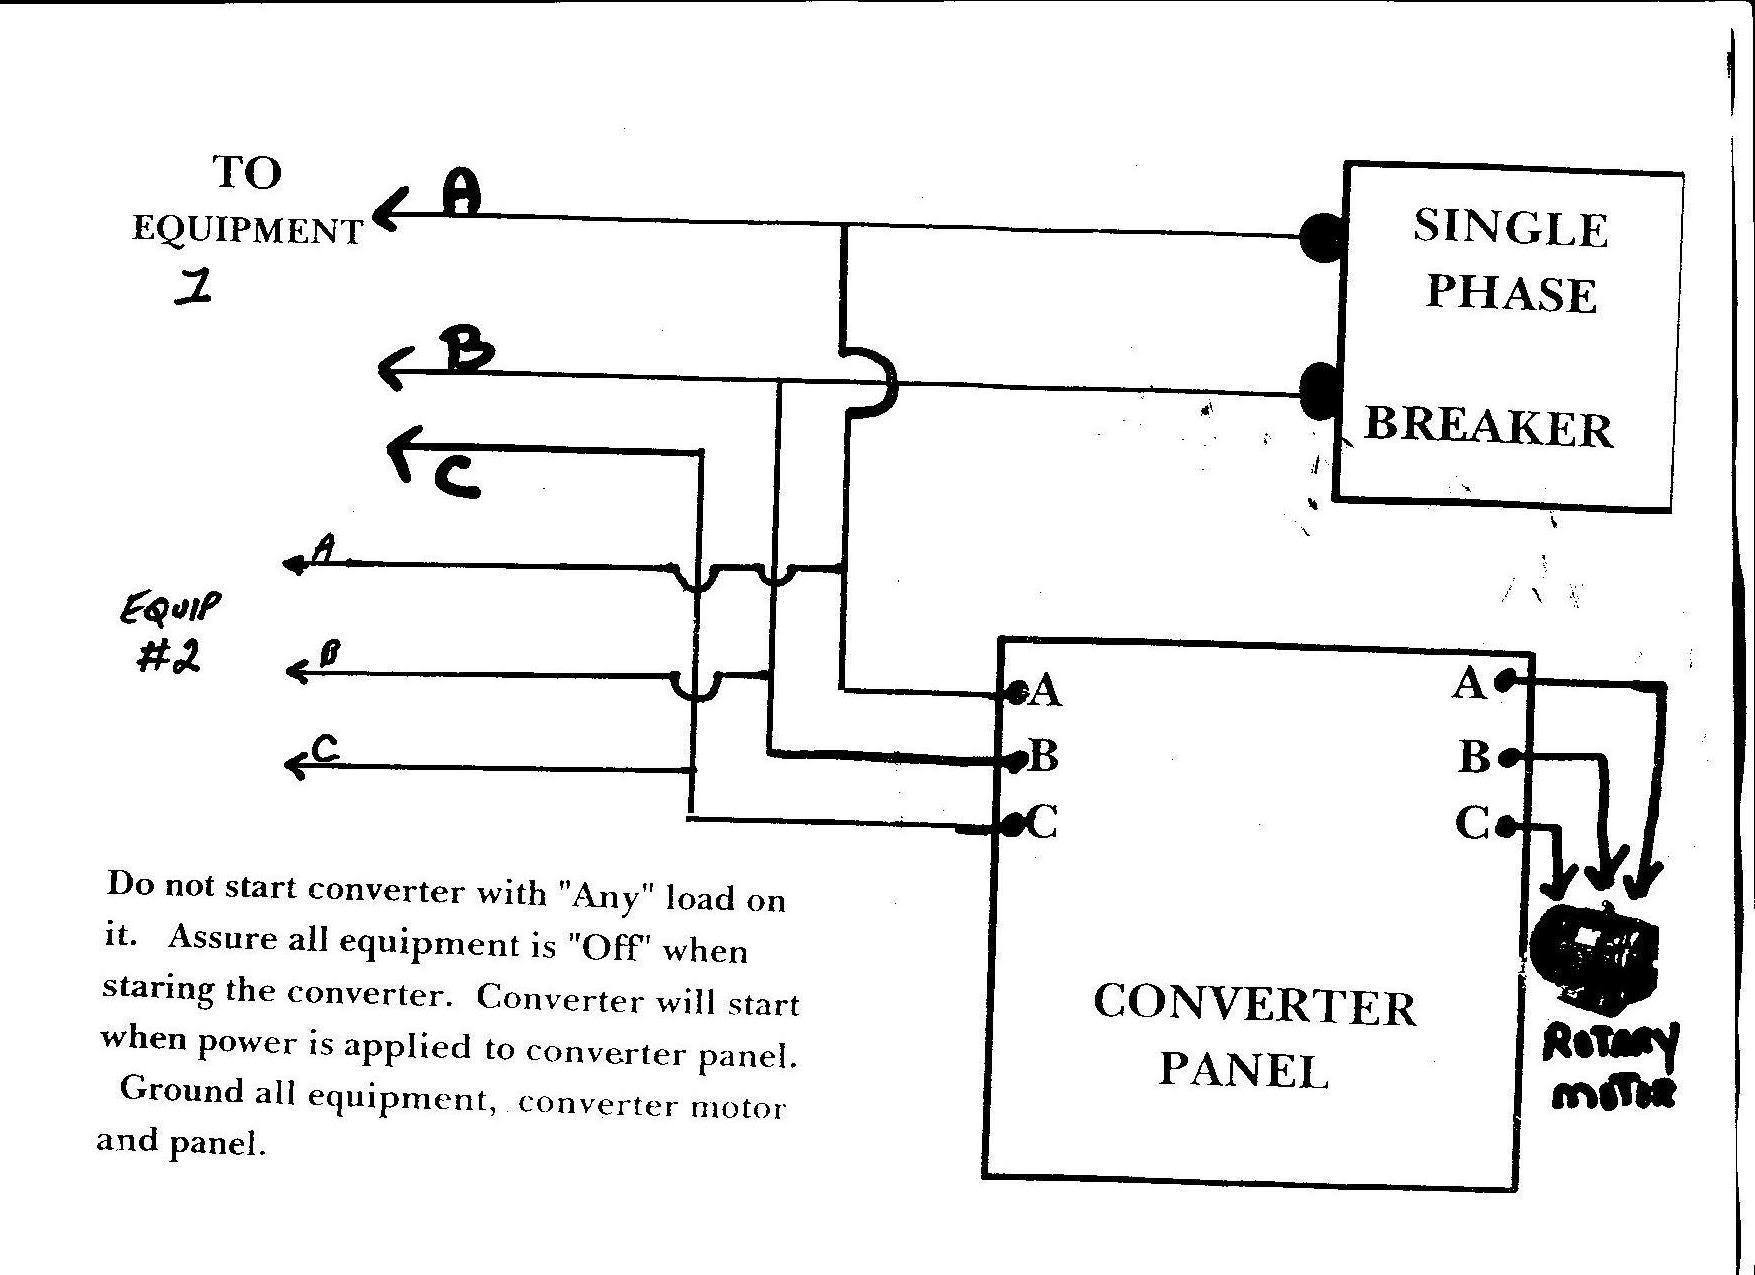 ronk phase converter wiring diagram for pioneer radio deh 150mp american rotary free